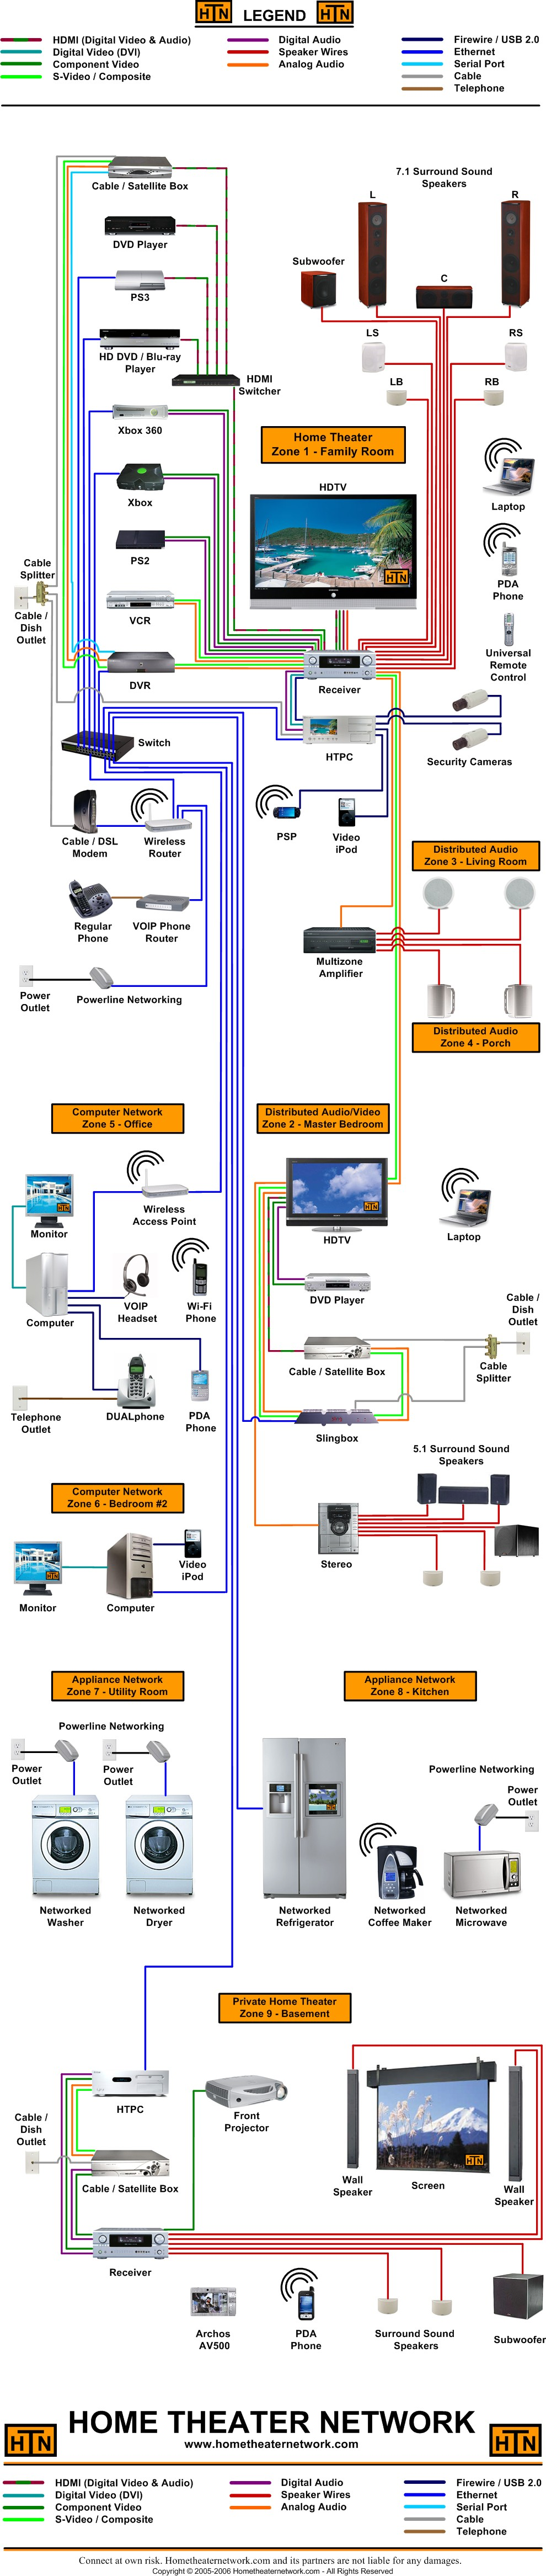 Home Media Network Diagram Best Electrical Circuit Wiring Wireless Simple Theater S Large Block Rh Hometheaternetwork Com Examples